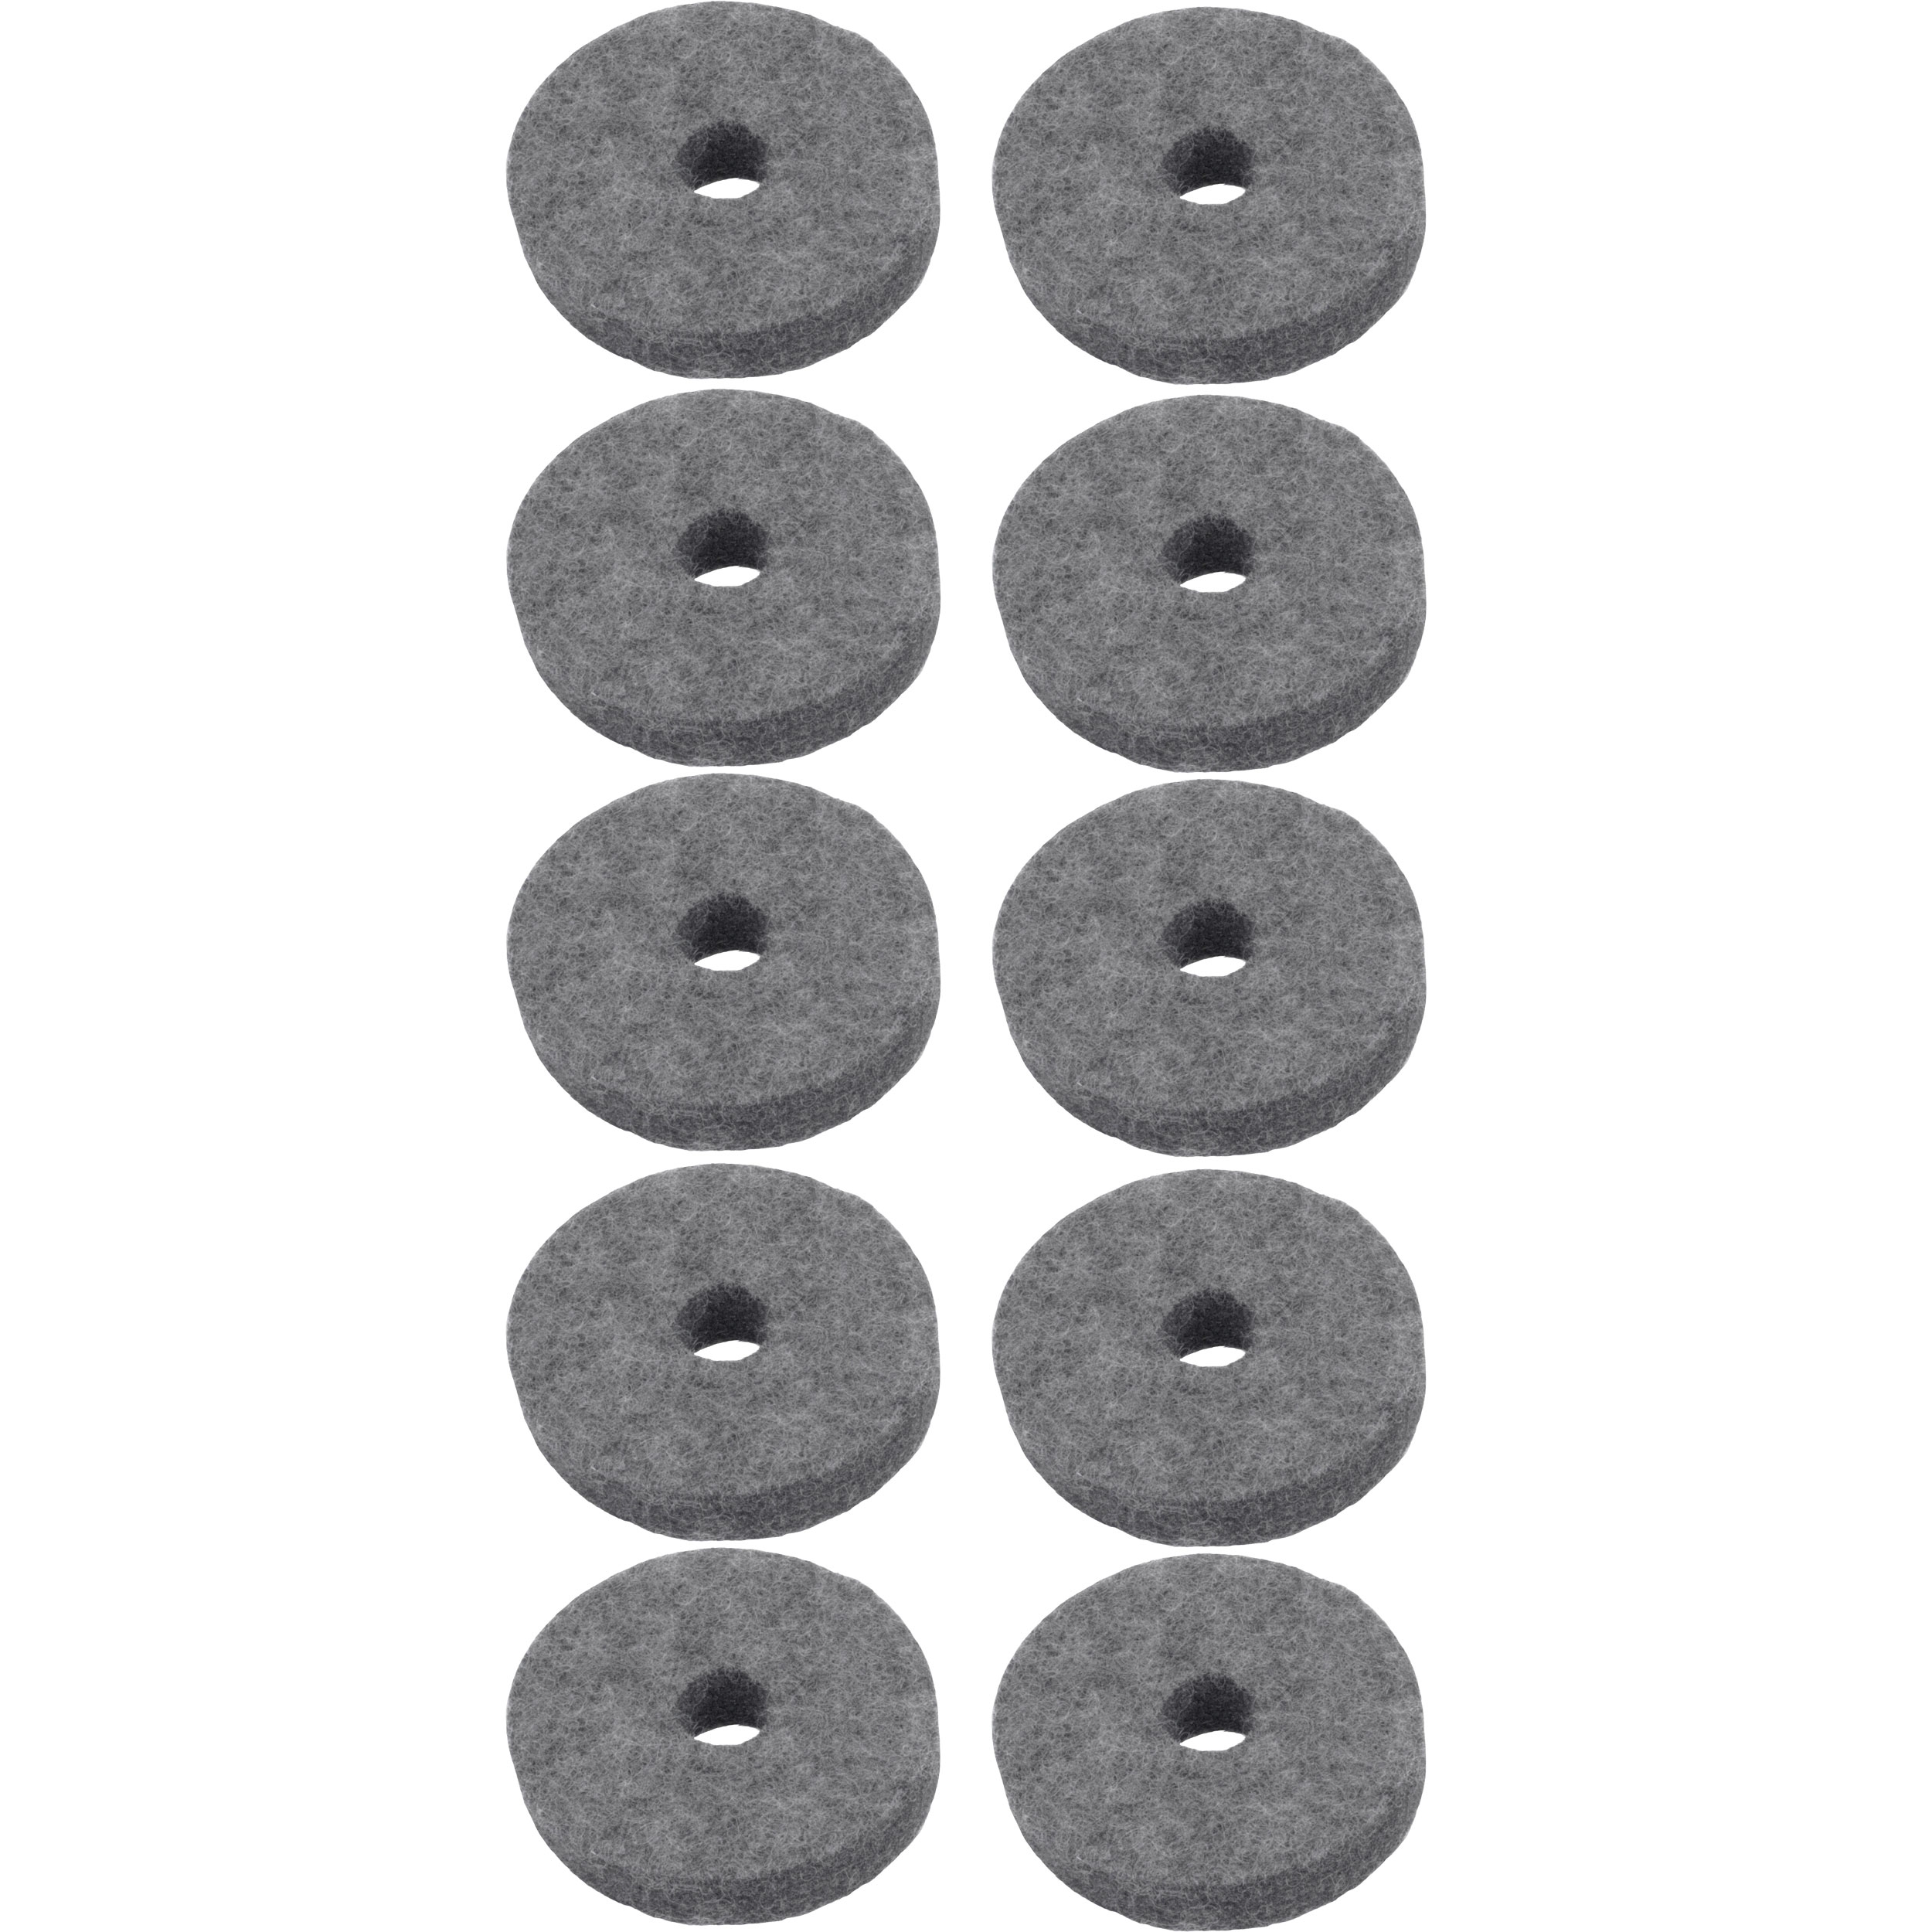 Zildjian Package of 10 Hi-Hat Felts